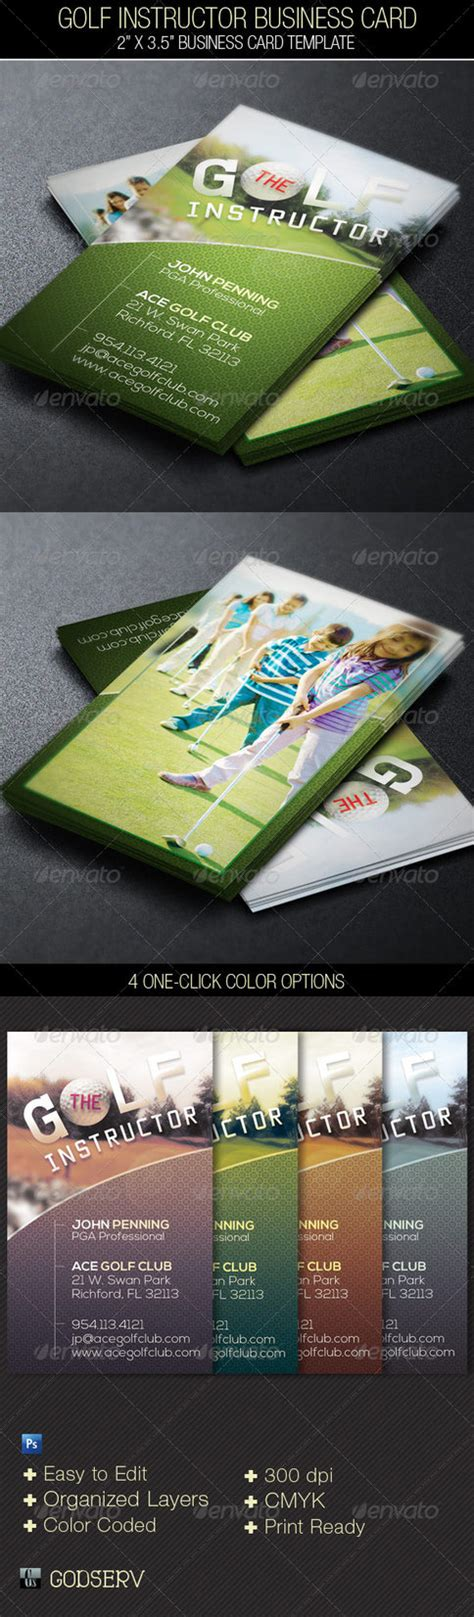 golf membership card template golf instructor business card template by godserv on